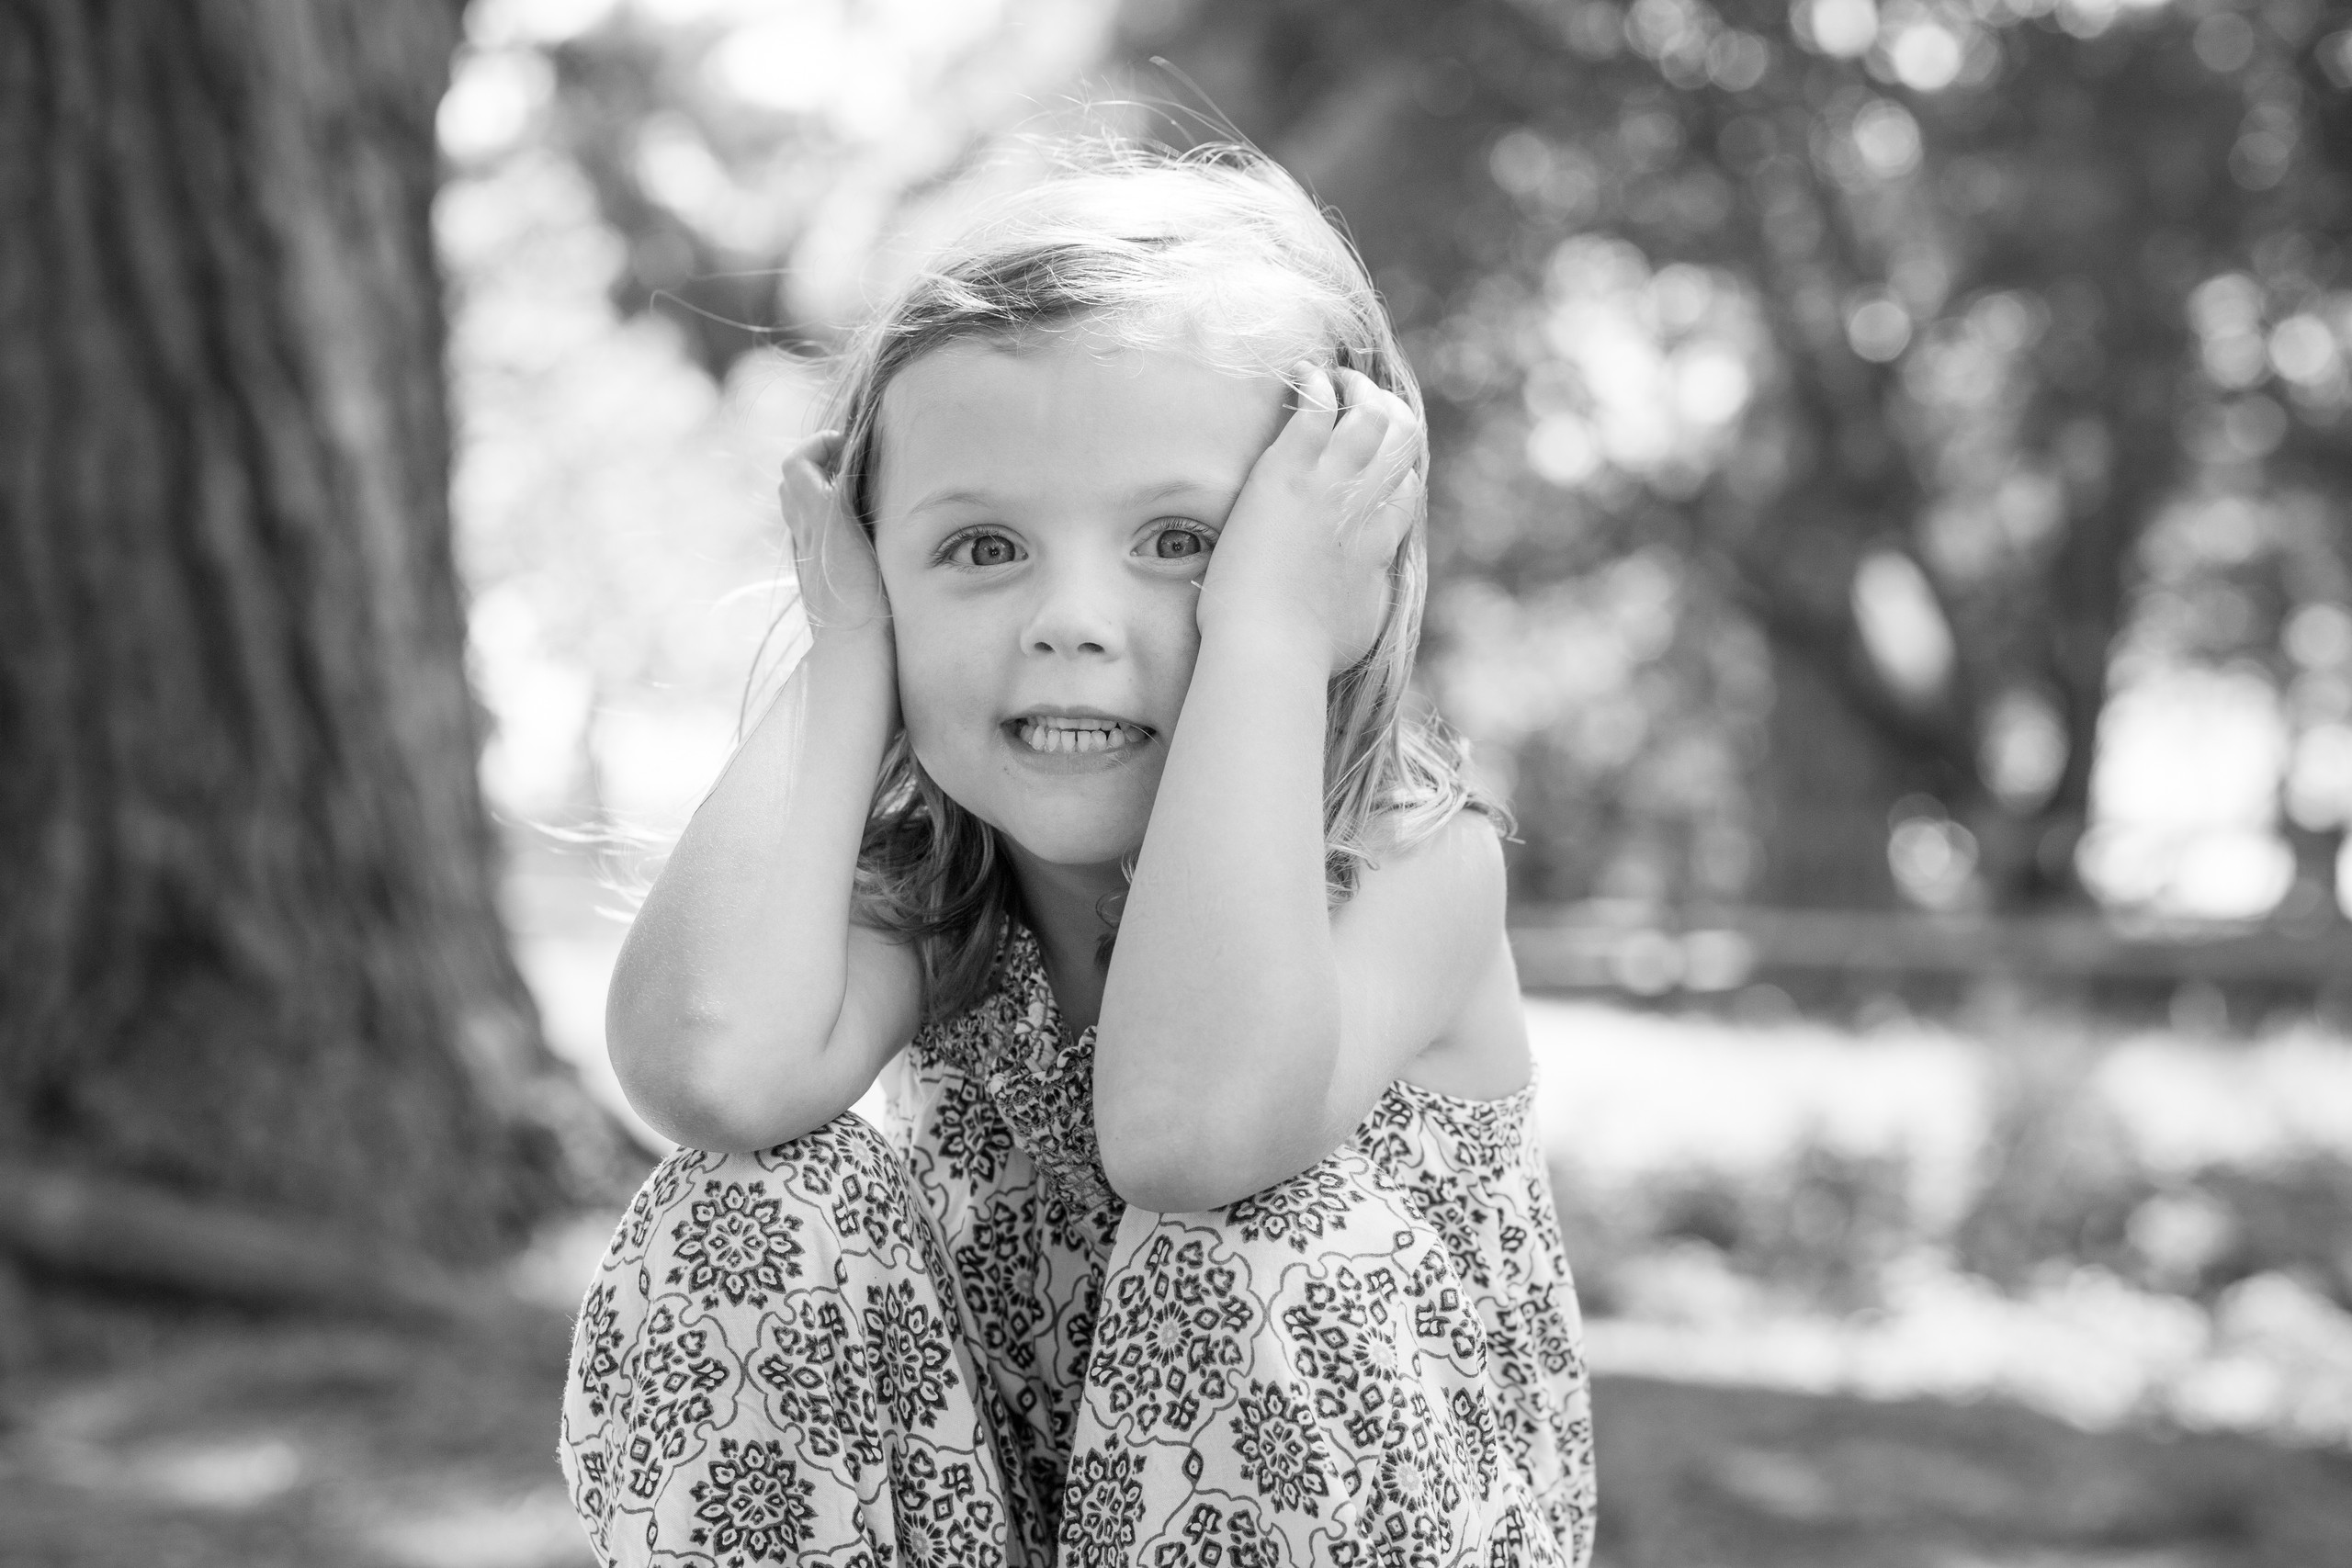 small child poses for the photographer